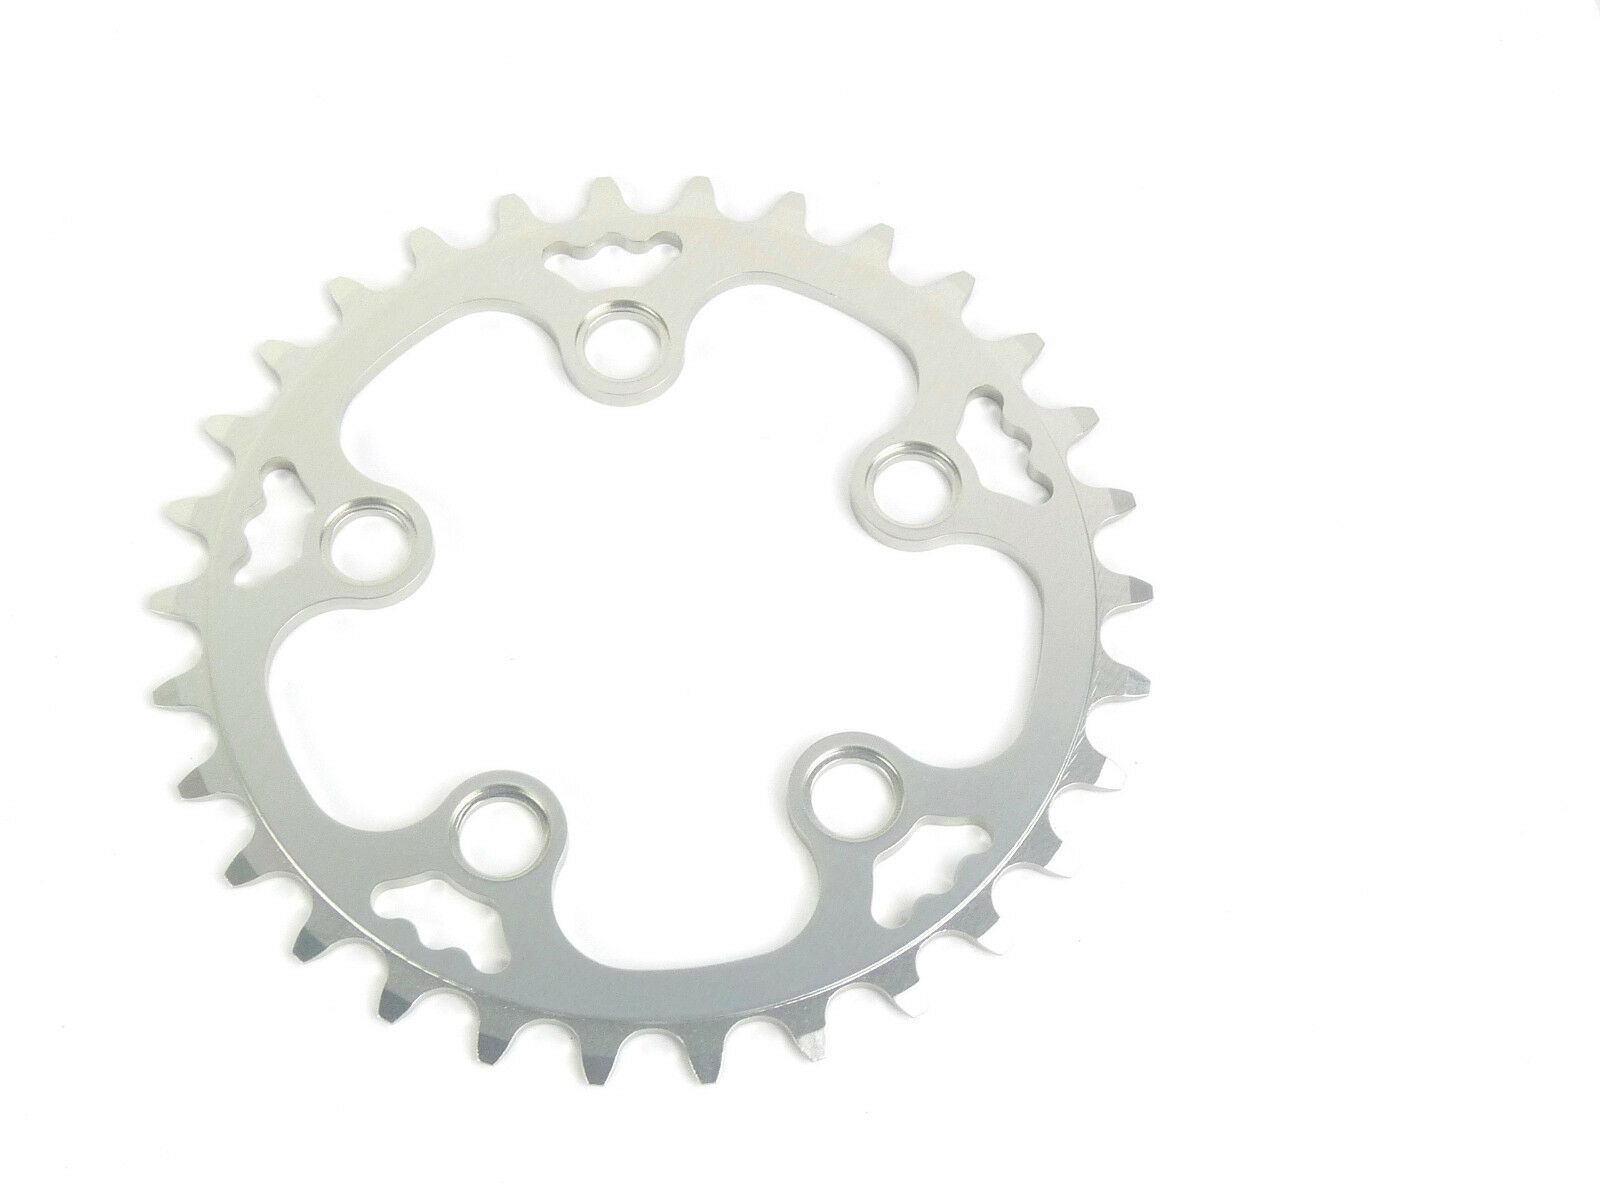 Willow 30T chainring 74 BCD made in the USA Vintage Bcycle Rivendell NOS